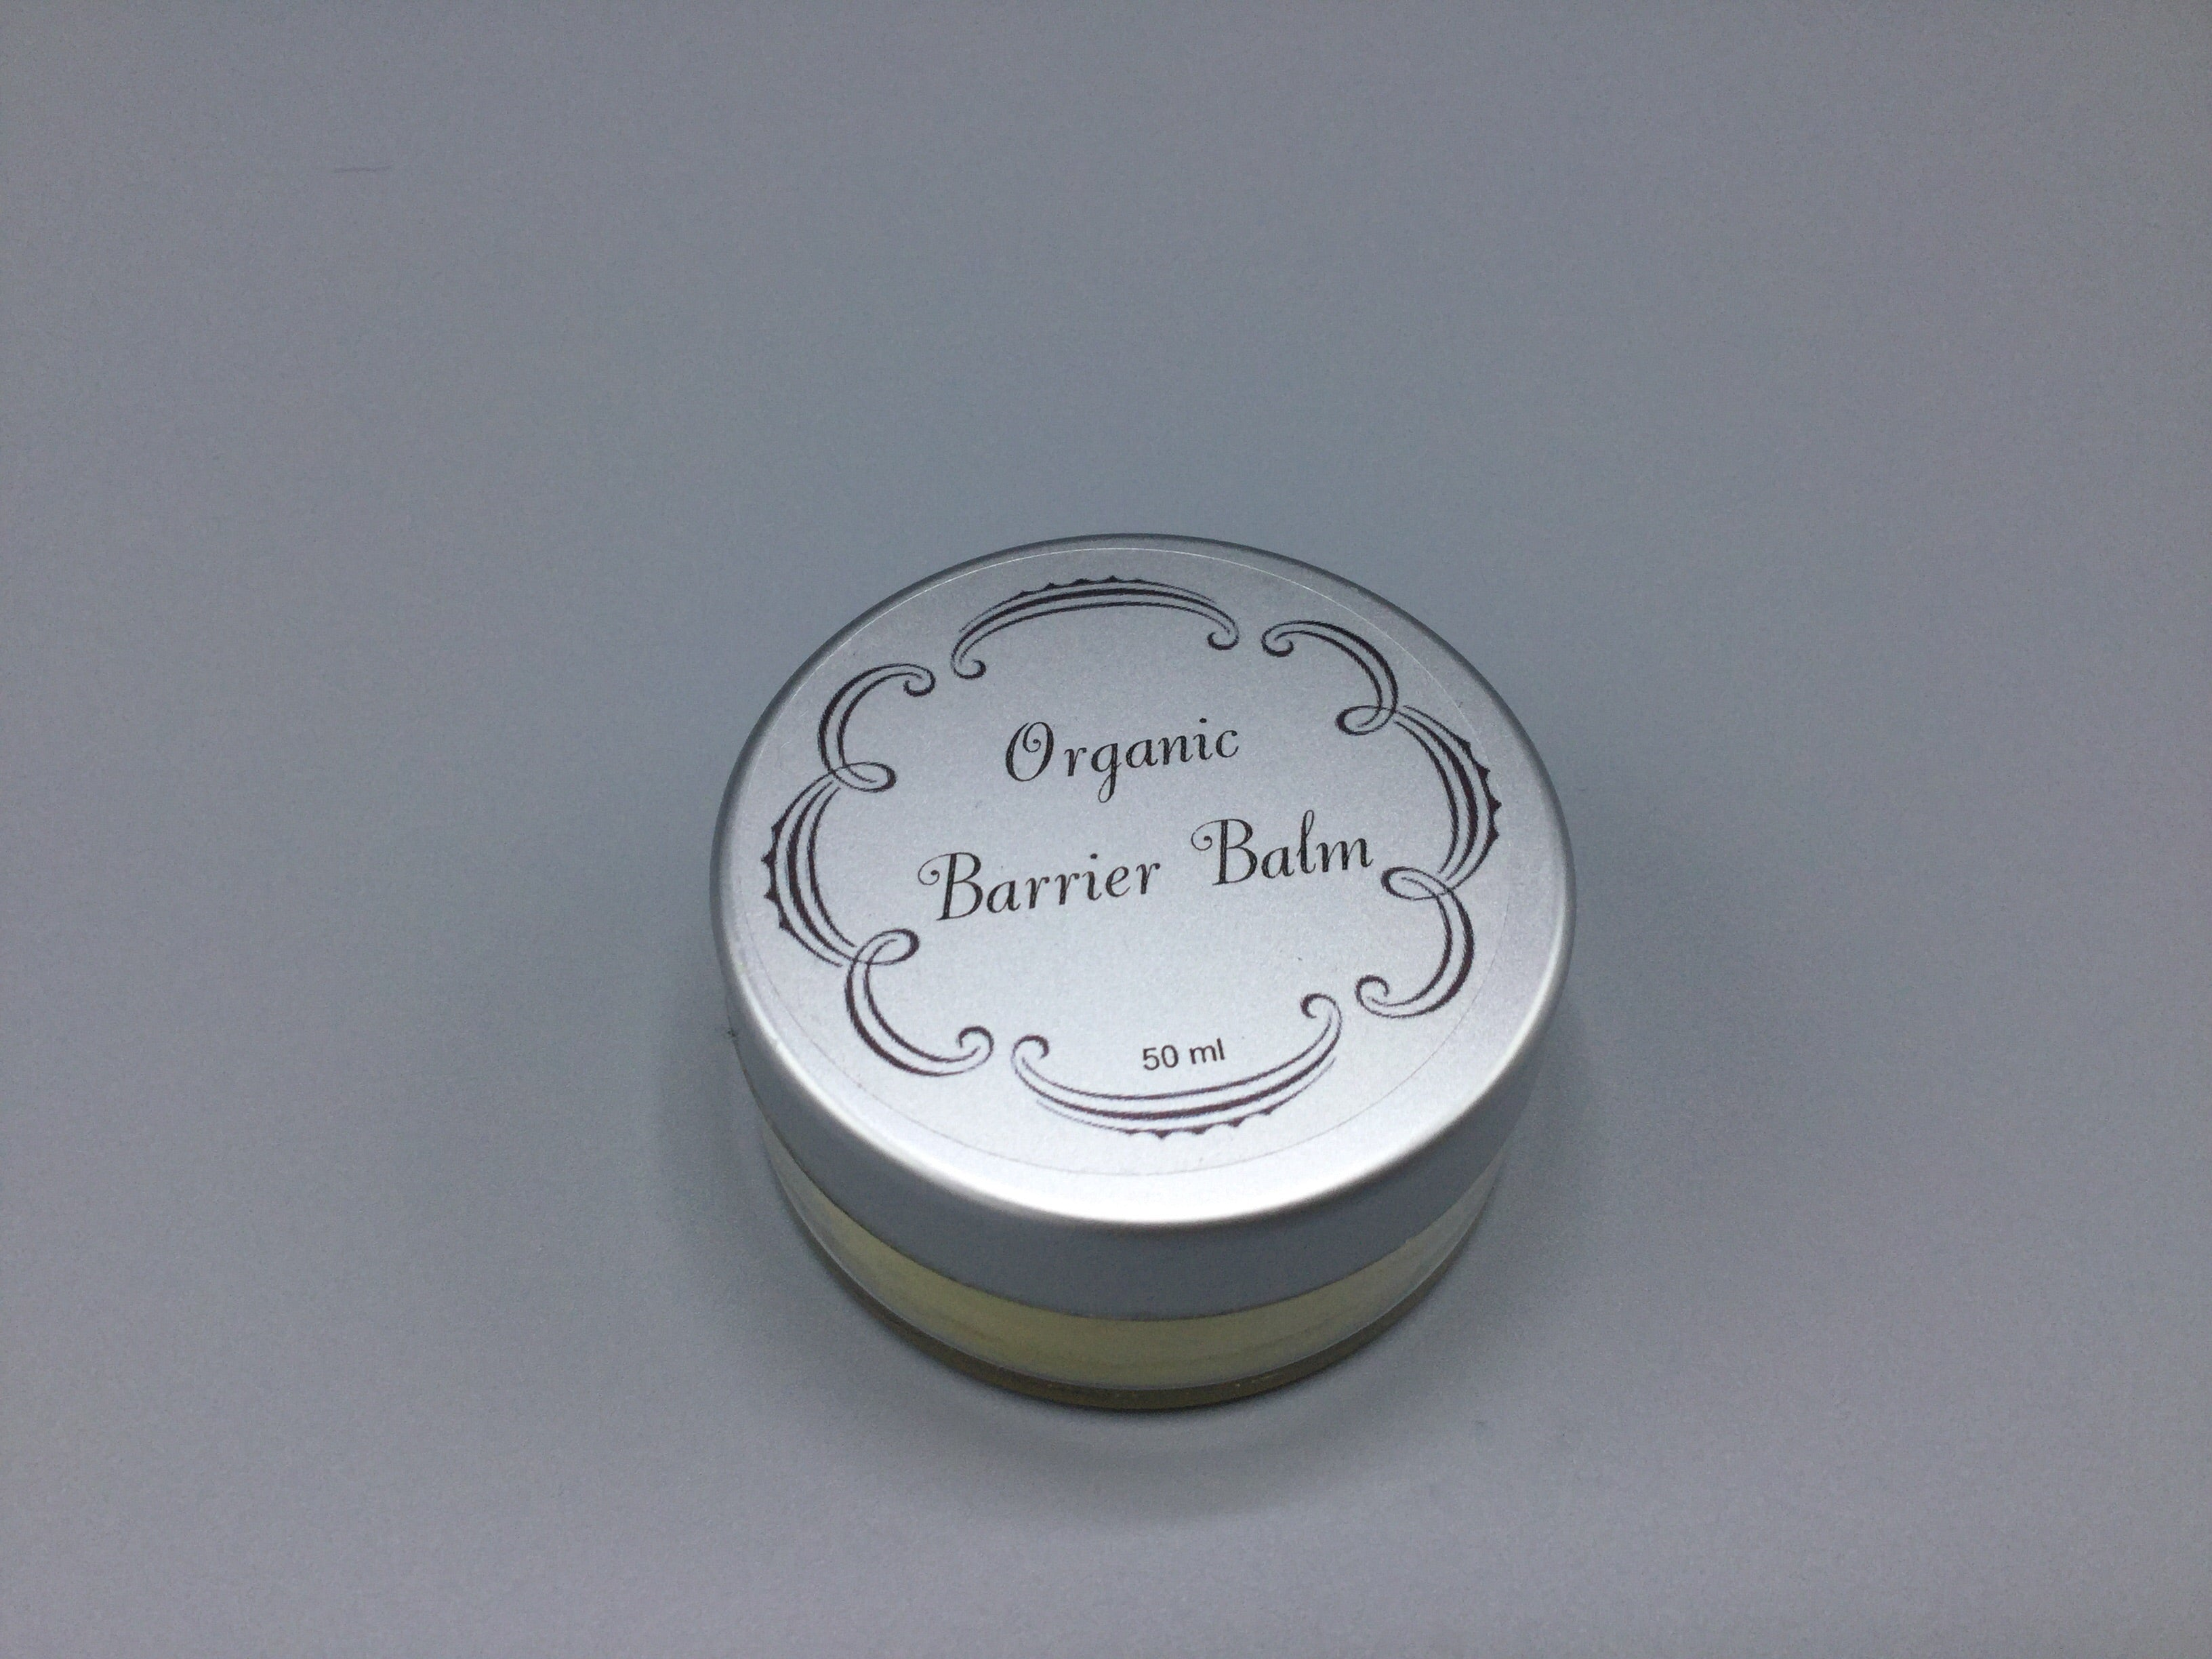 Burseth Brothers Organic Barrier Balm